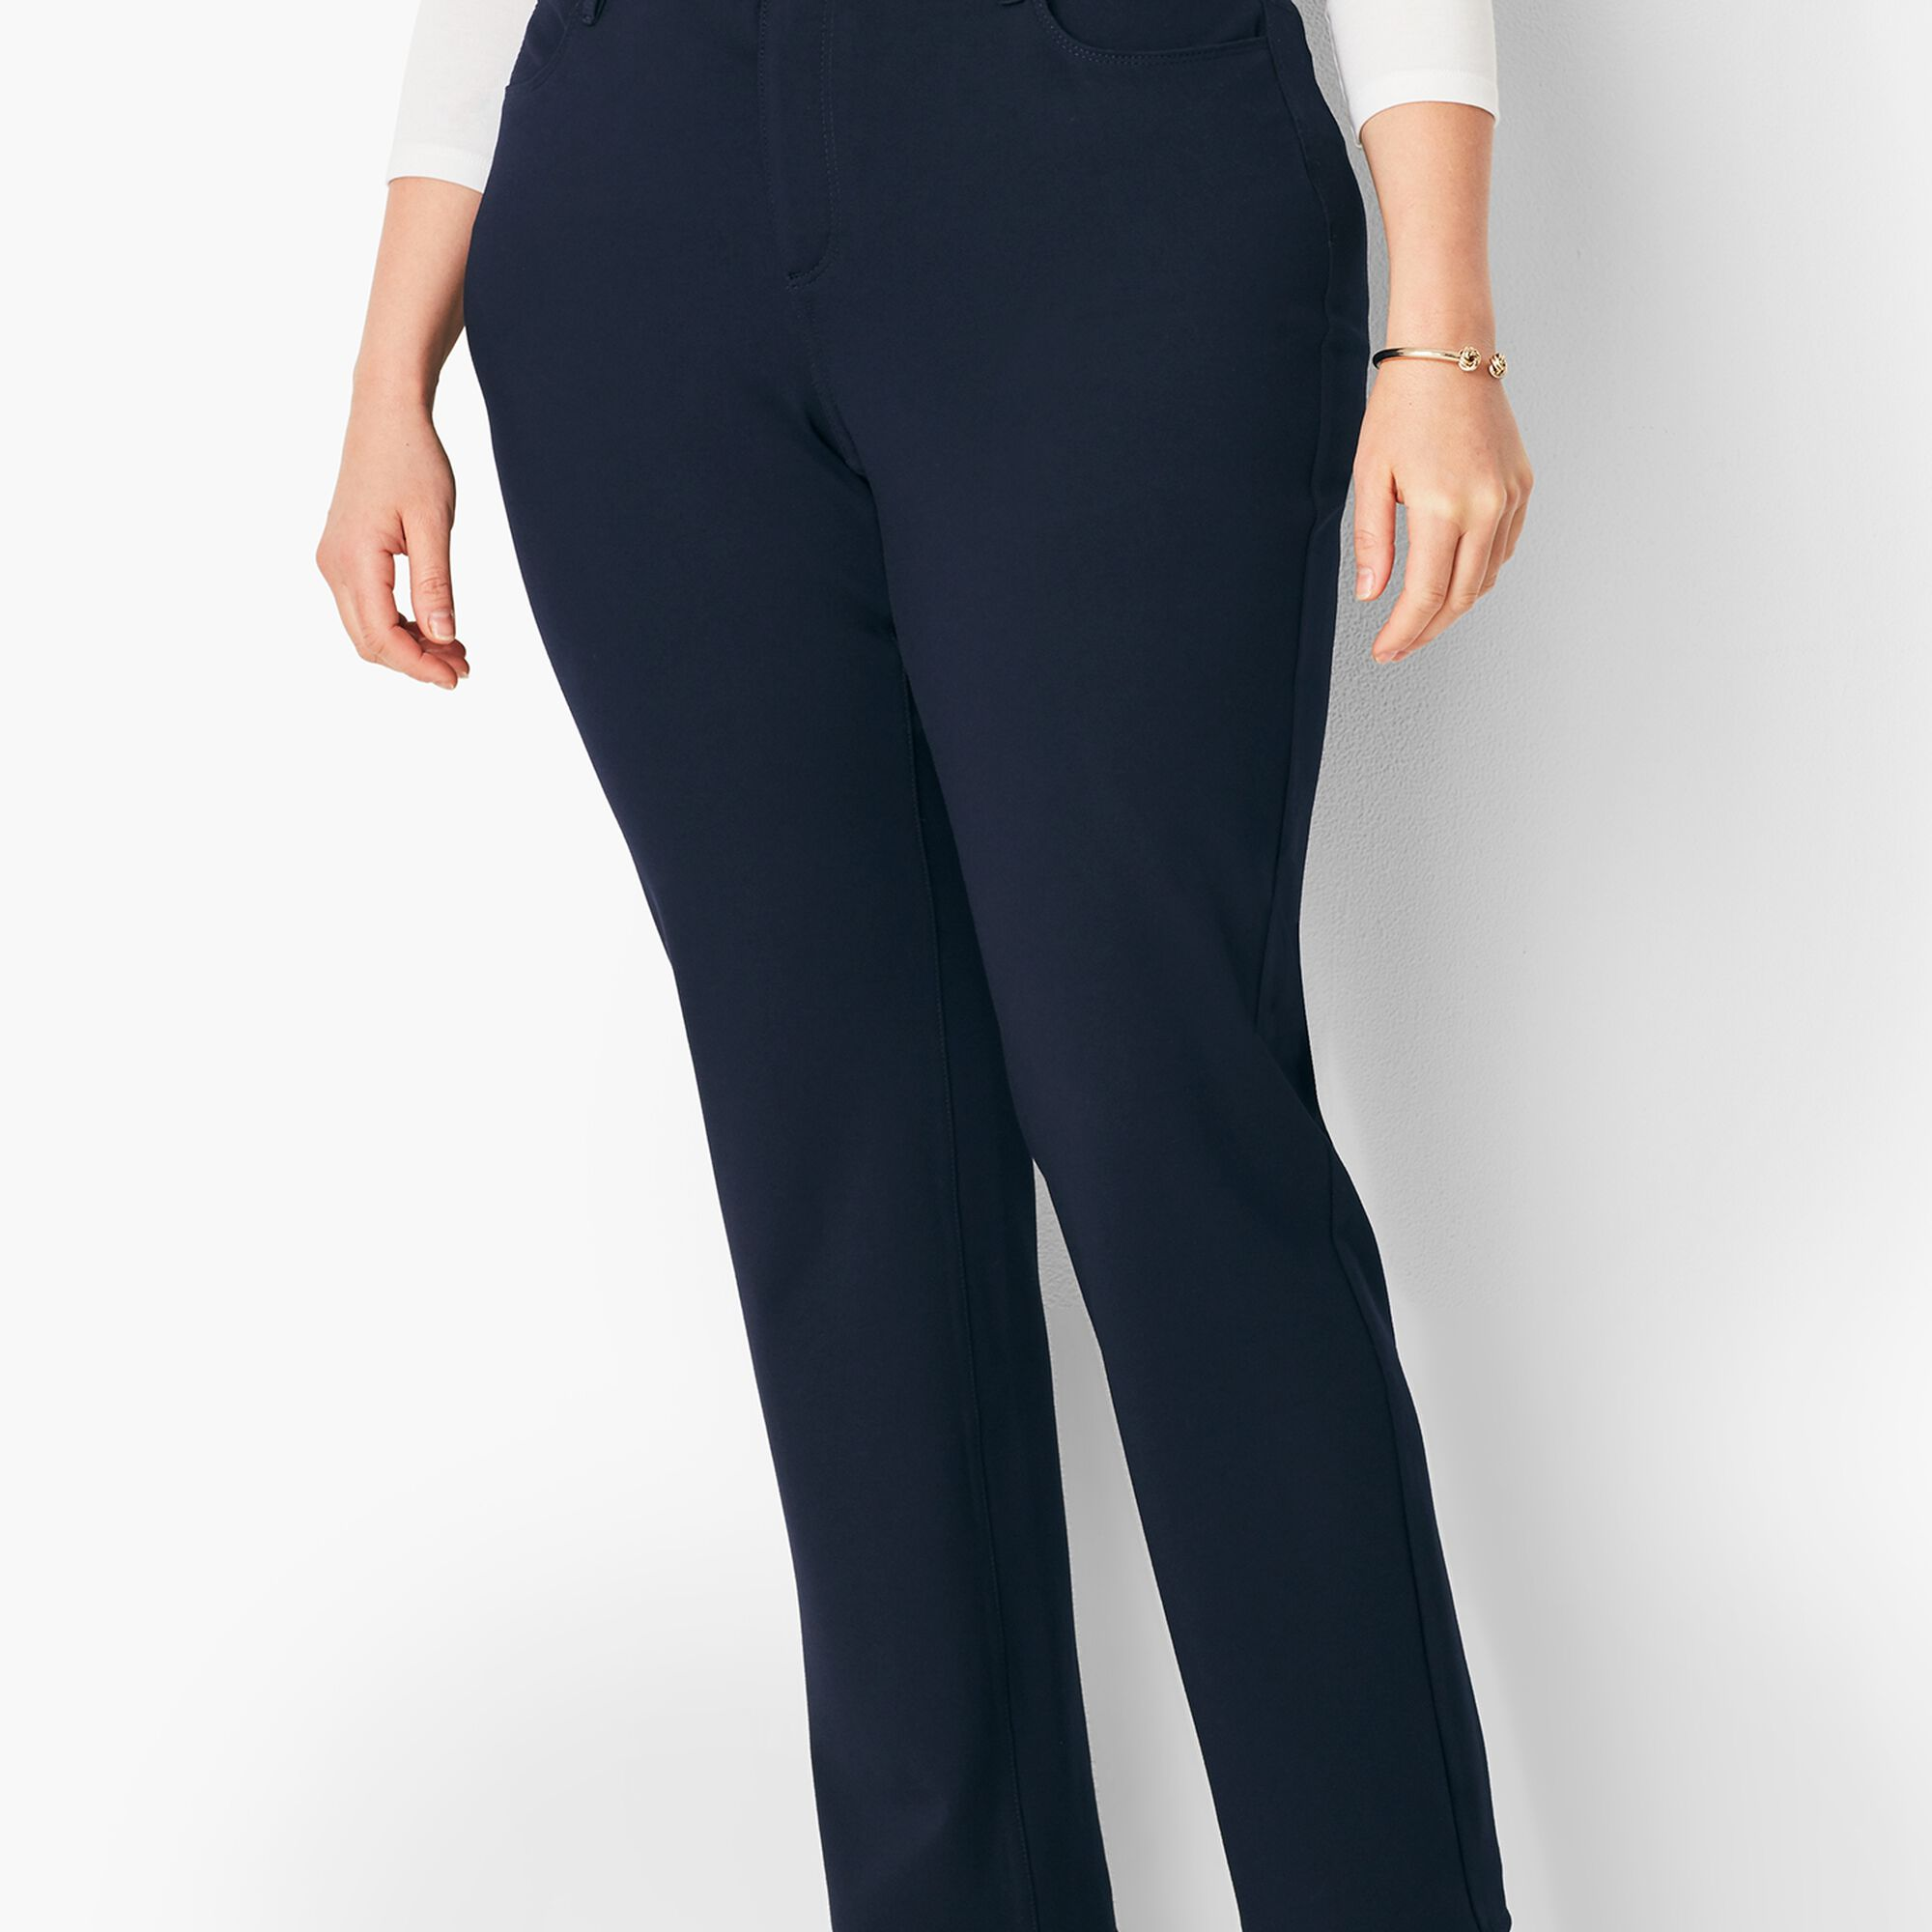 a0c18d545c5 Images. Plus Size High-Rise Straight-Leg Pants - Ponte Curvy Fit